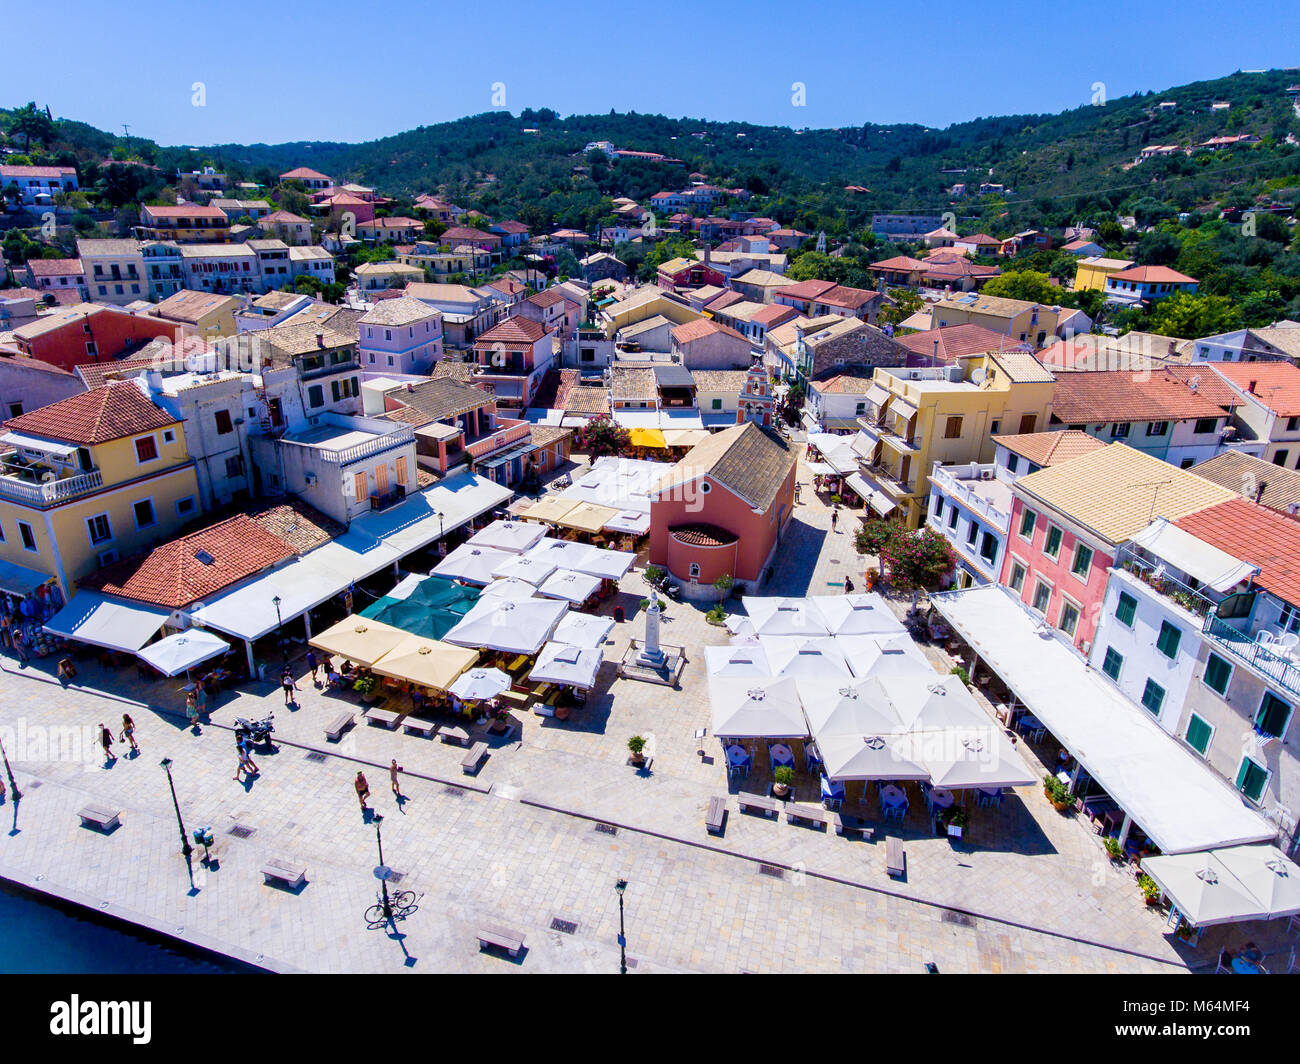 Gaios, capital city of Paxos Island near Corfu, aerial view. Important tourist attraction in the Ionian islands, Stock Photo